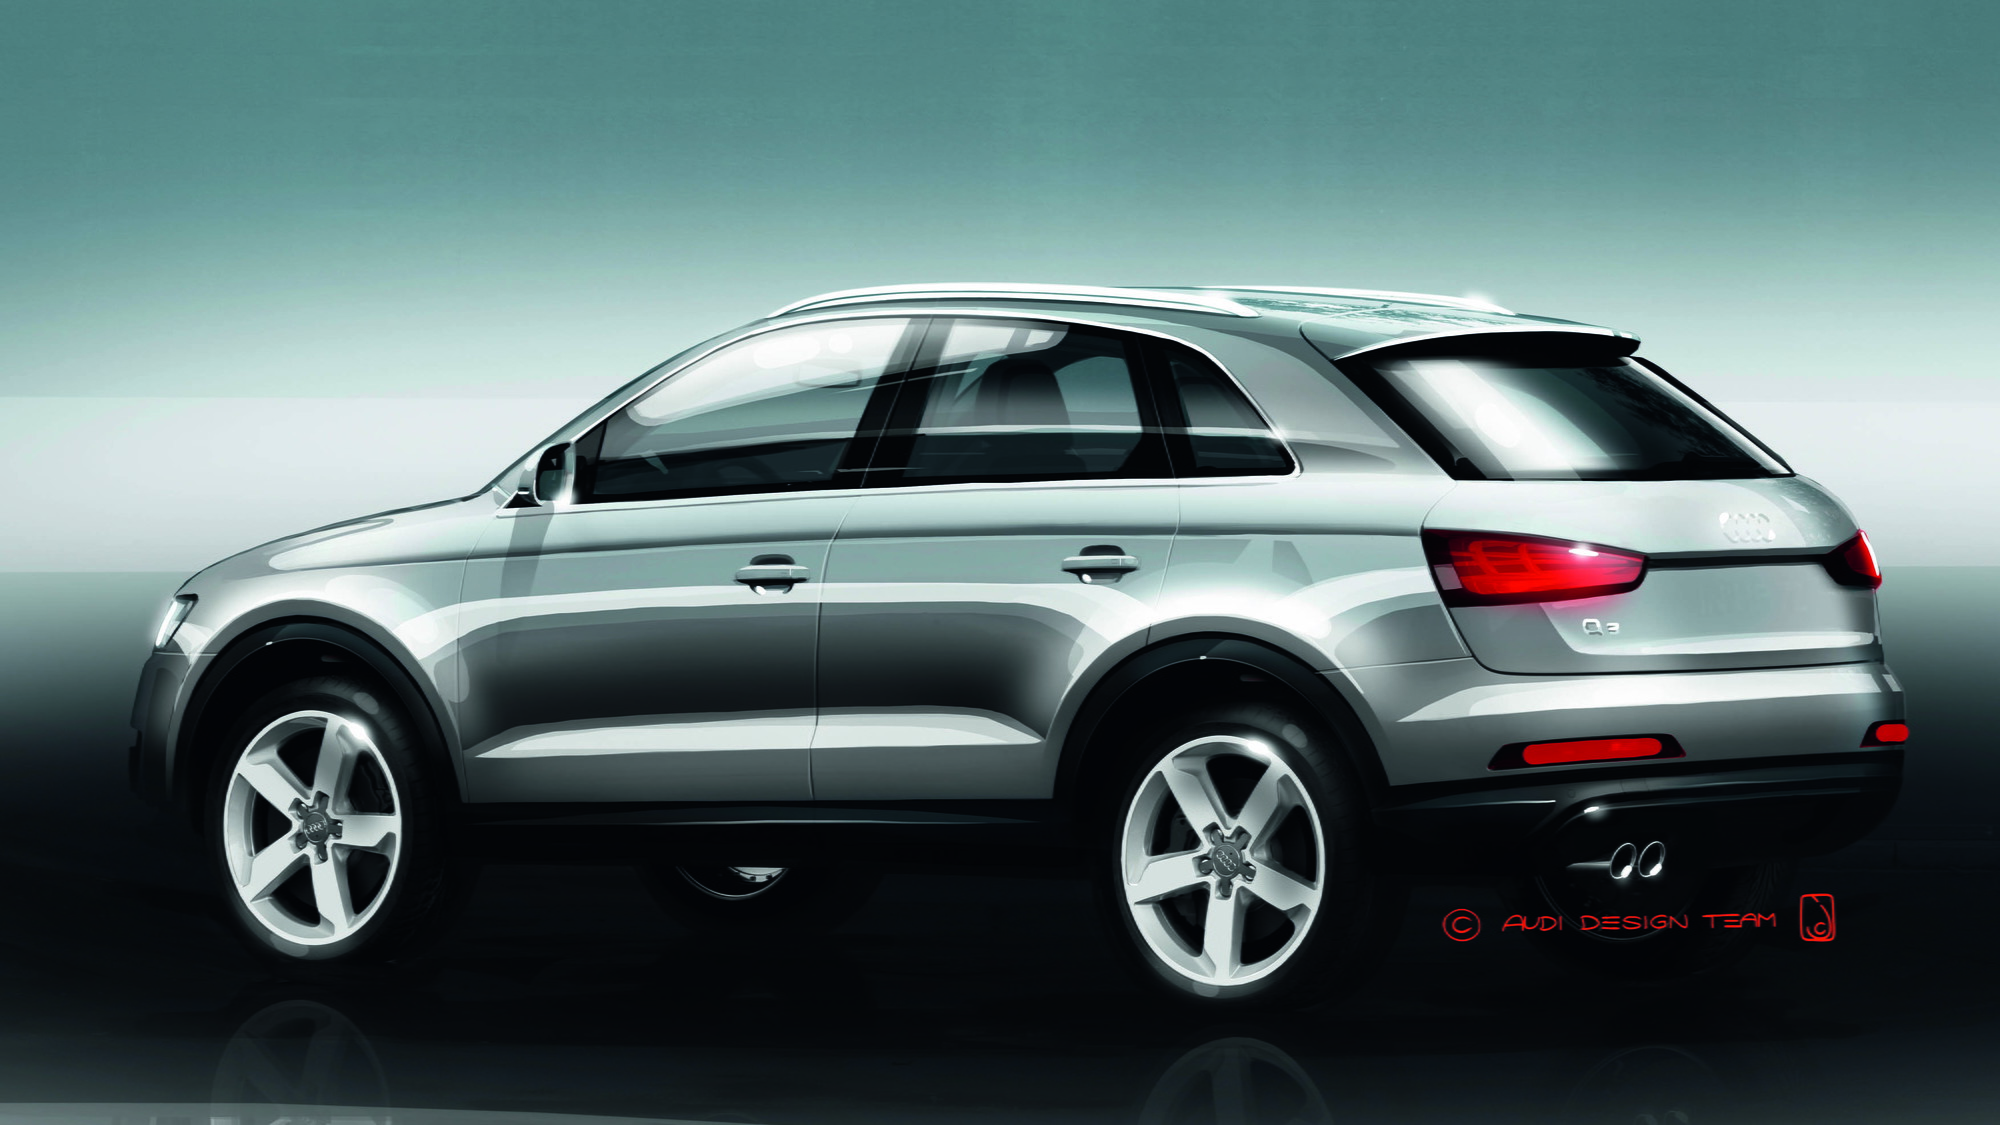 2012 Audi Q3 official sketches